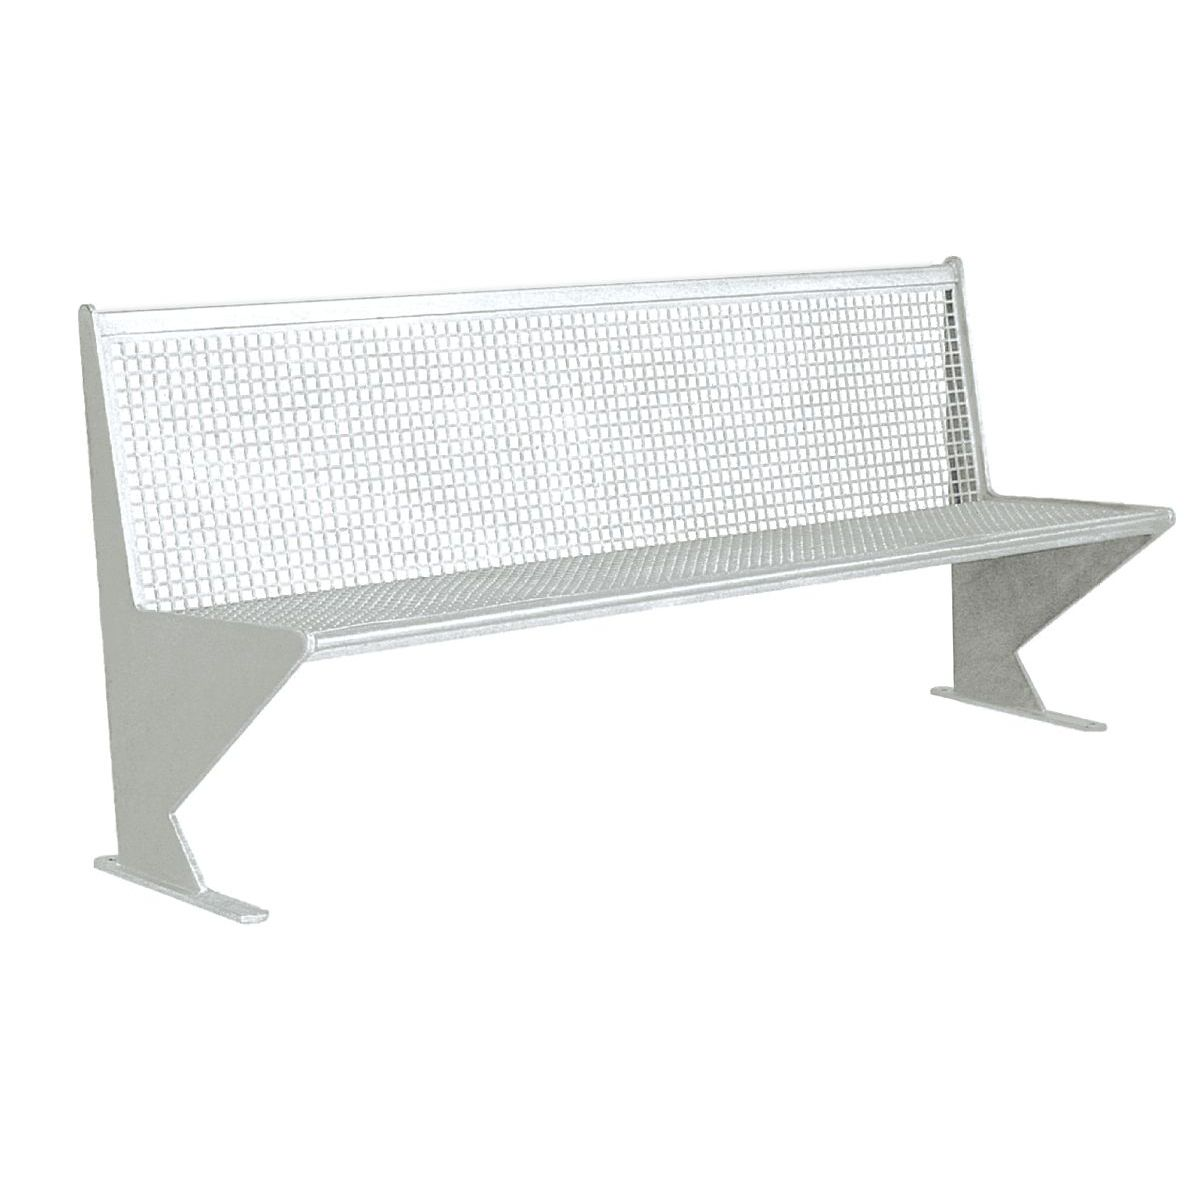 Cerdanyola Bench C-102 zoomed